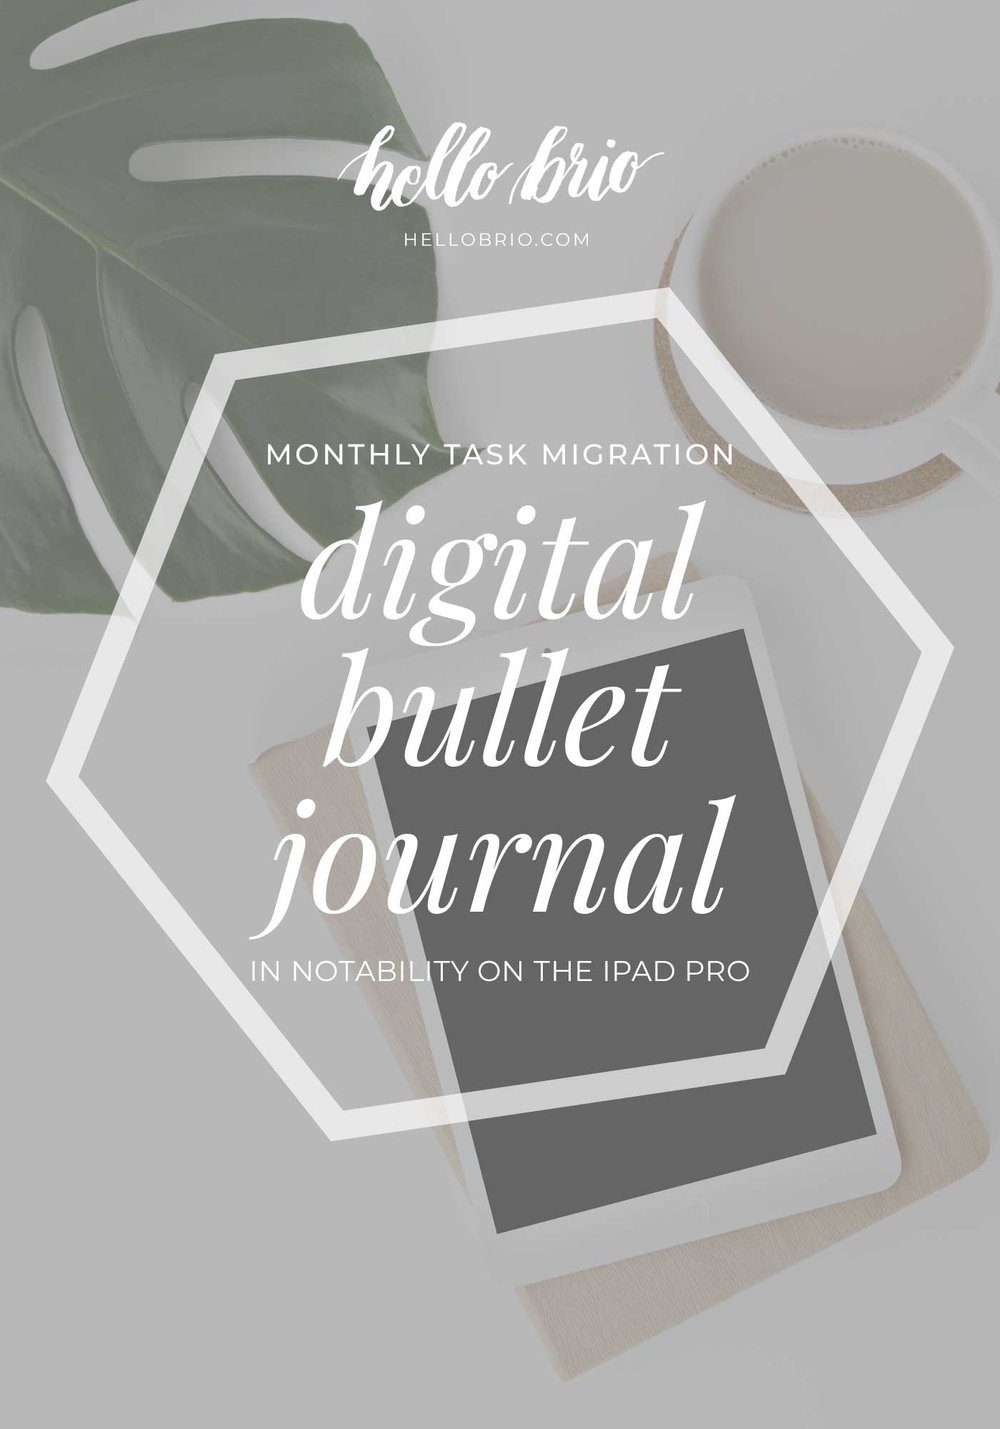 A video on how to do a monthly task migration in a digital bullet journal using Notability | Hello Brio